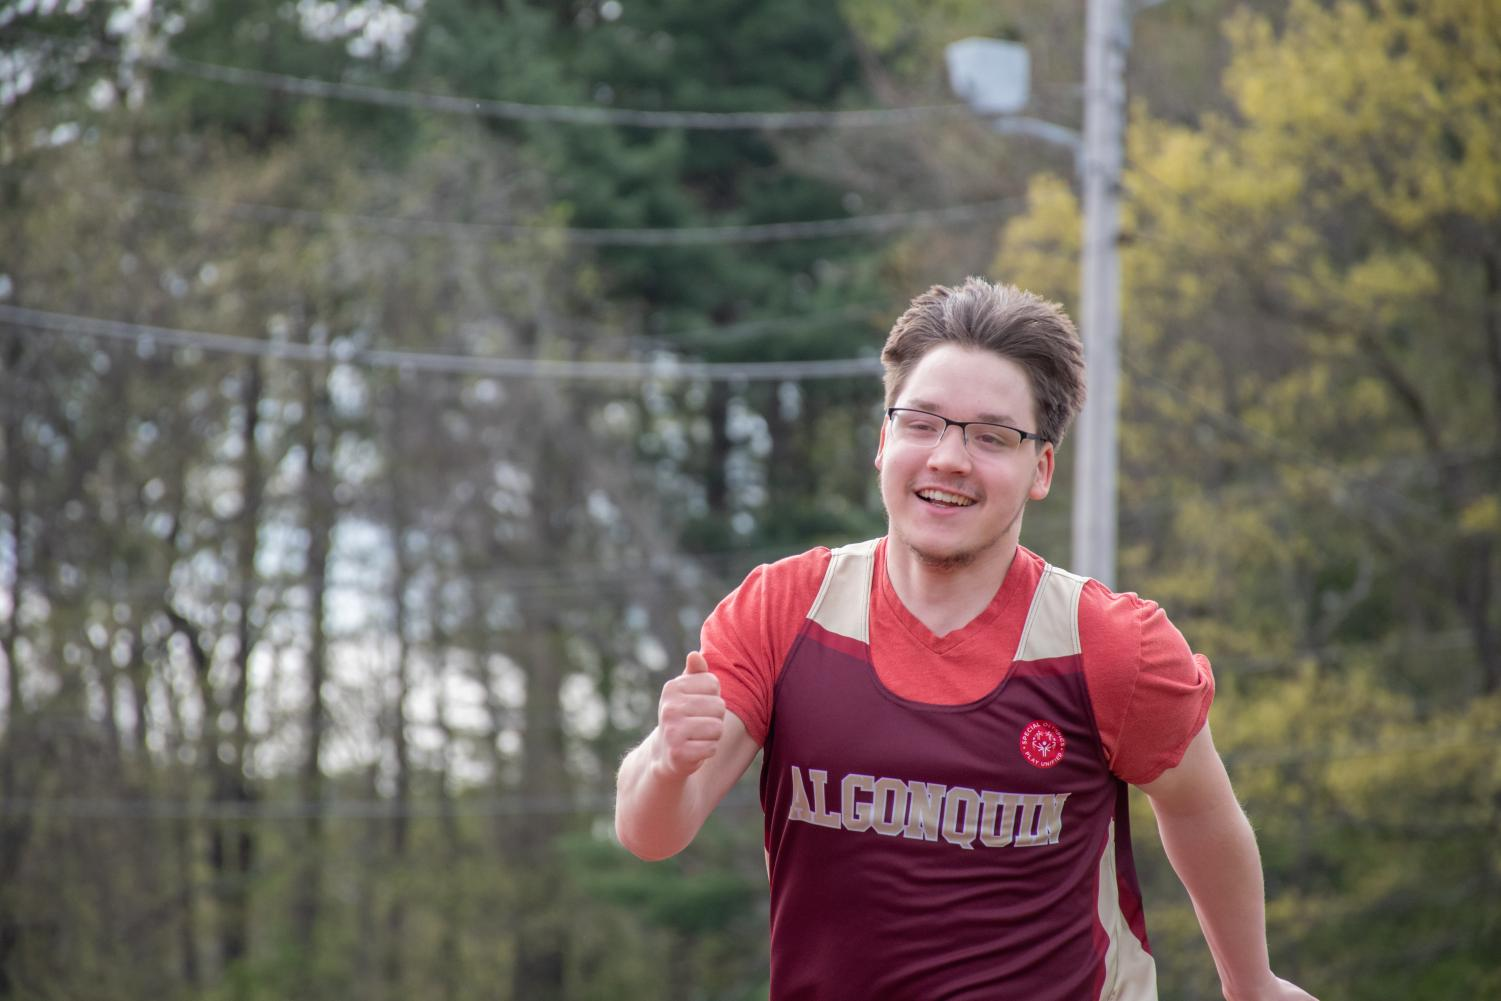 Senior Nick Vaskas runs along the track in the unified track meet against Westborough.